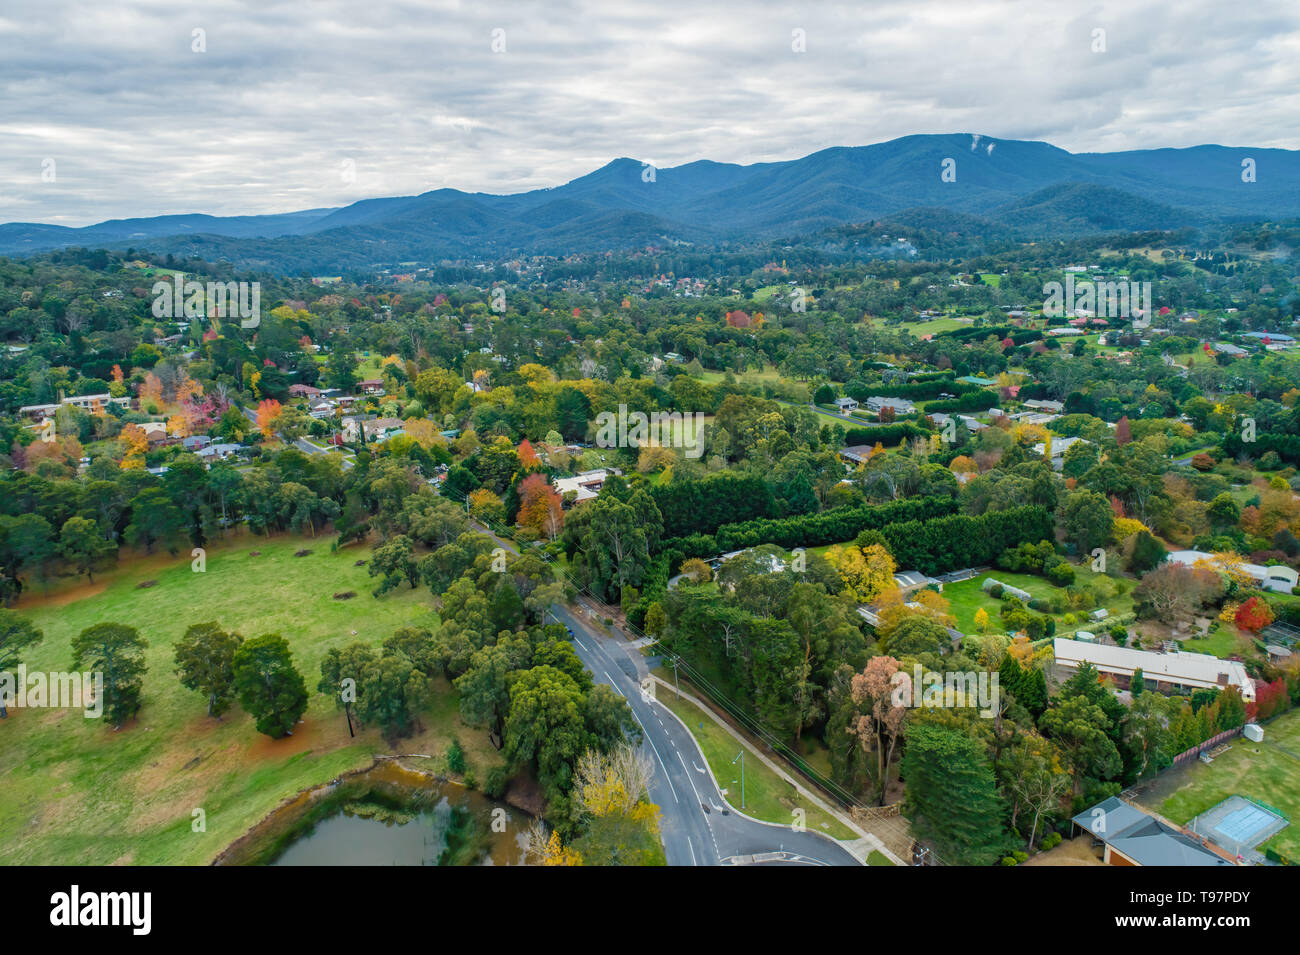 Scenic gree rural area with houses among trees surrounded by mountains in Victoria, Australia - aerial landscape - Stock Image